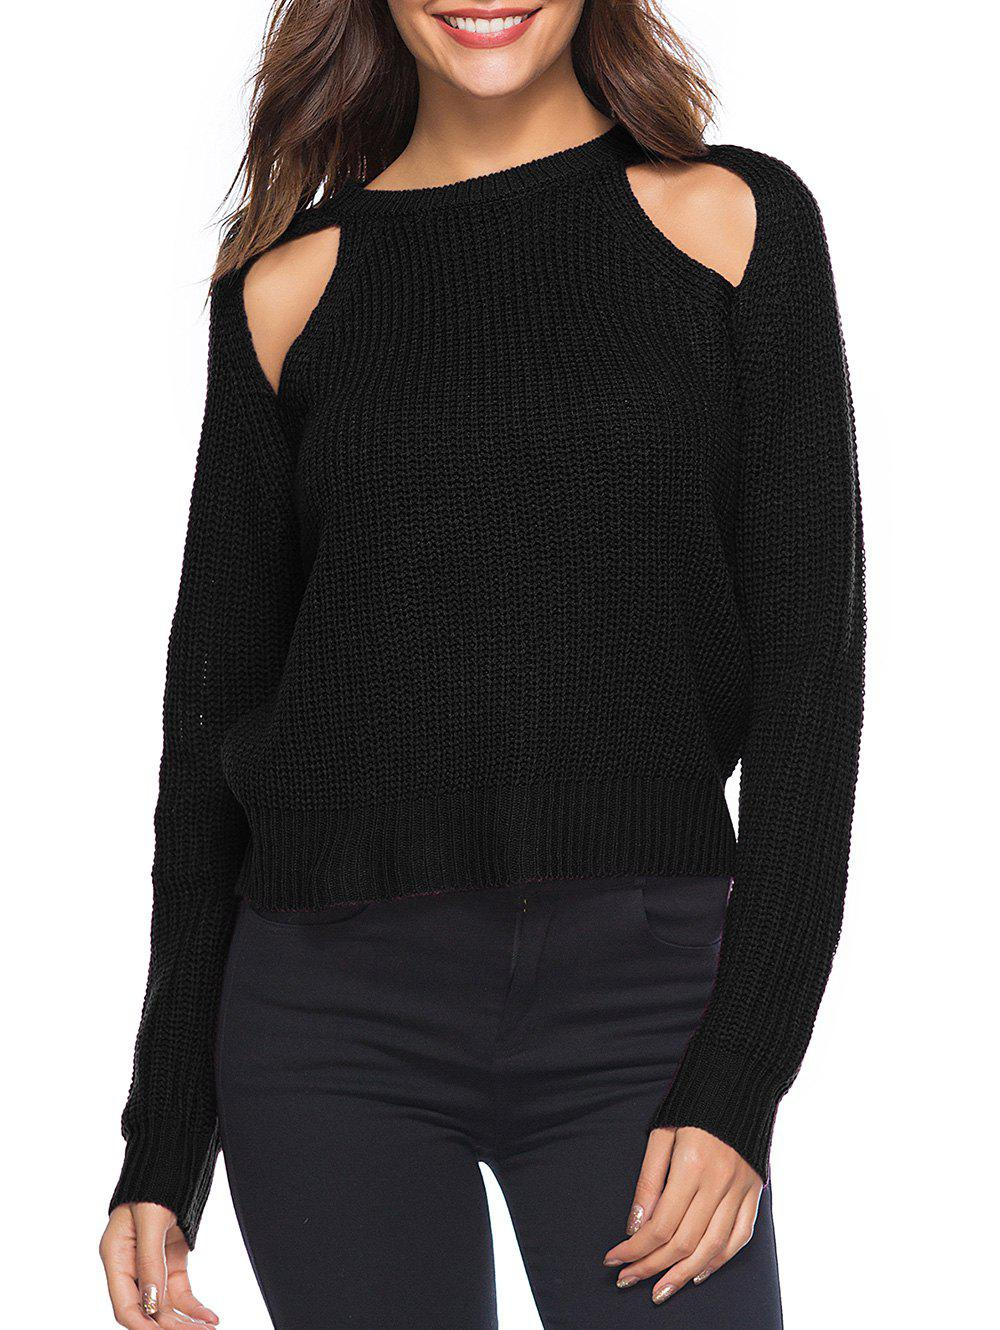 Cut Out Crew Neck Solid Sweater - BLACK XL